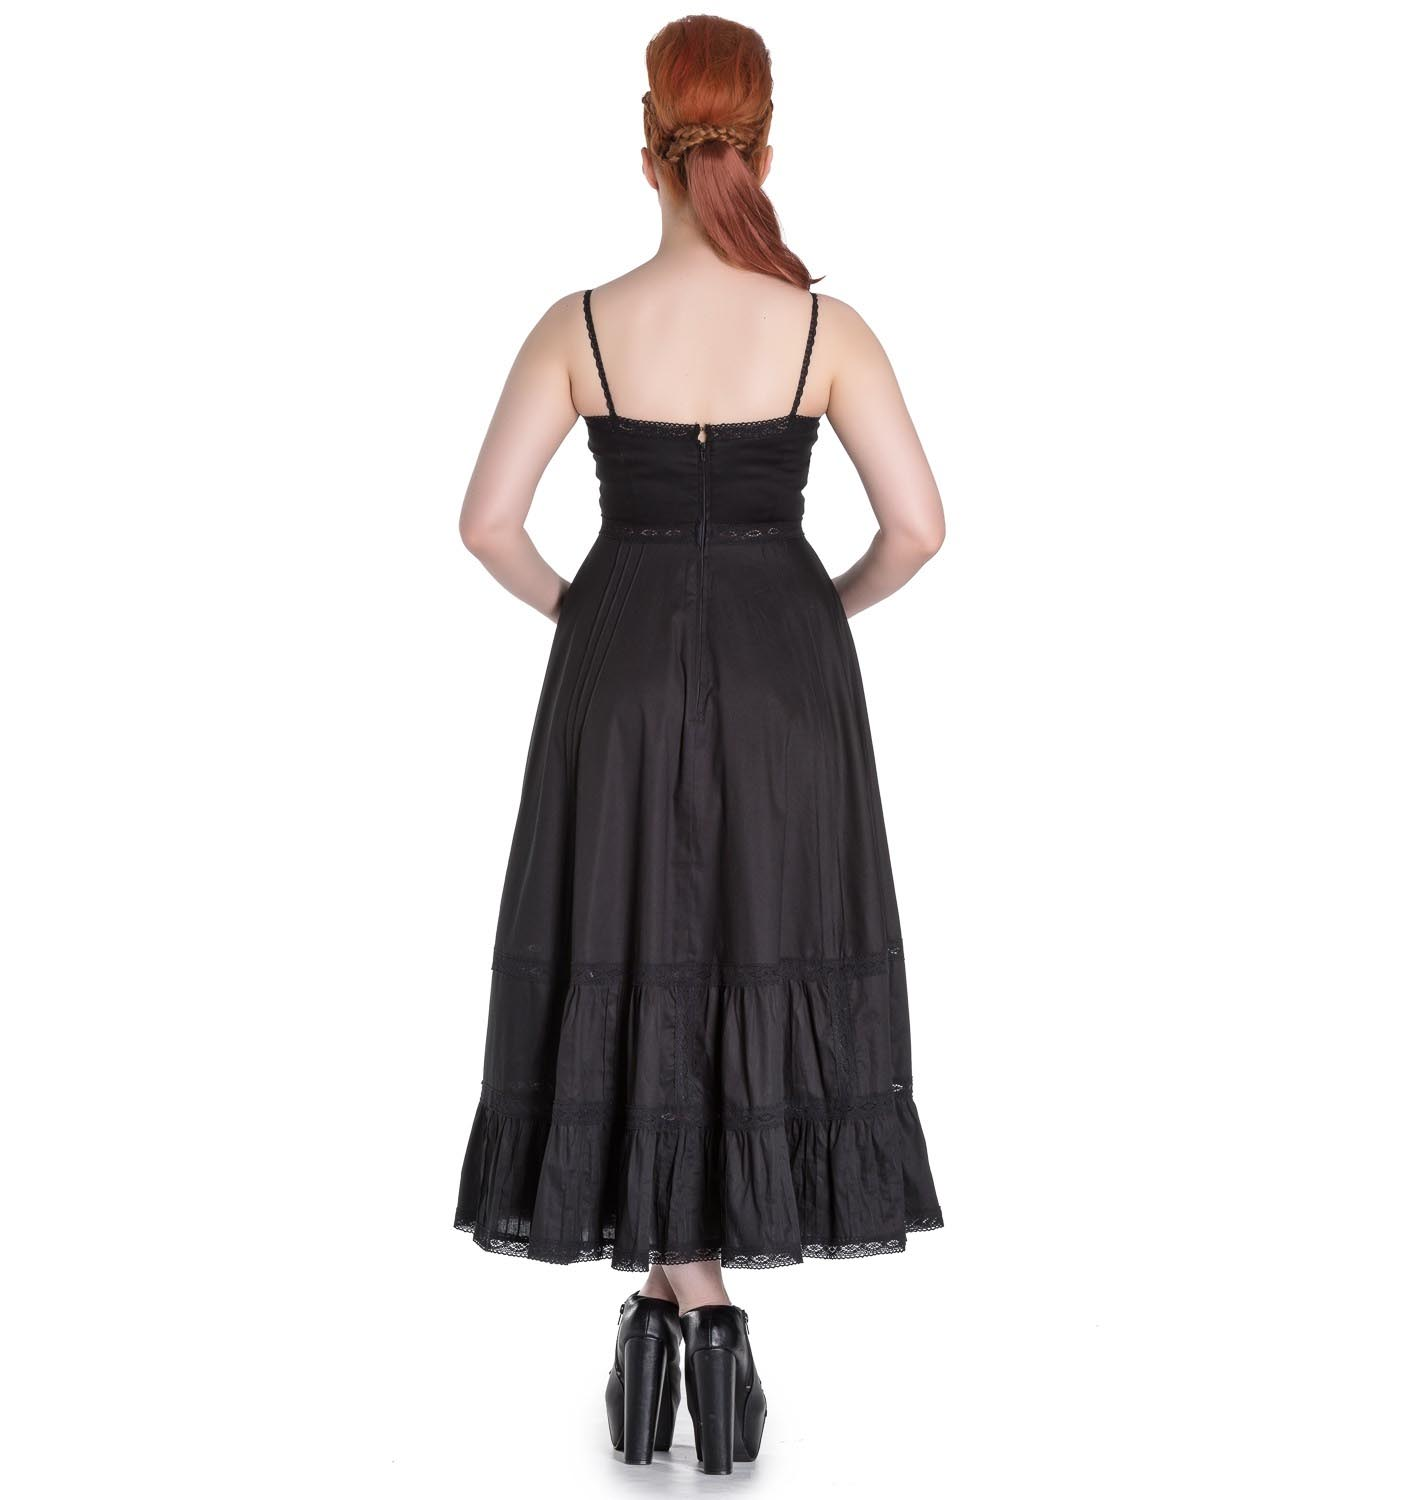 Hell-Bunny-Spin-Doctor-Goth-Maxi-Dress-ELIZABELLA-Black-All-Sizes thumbnail 9